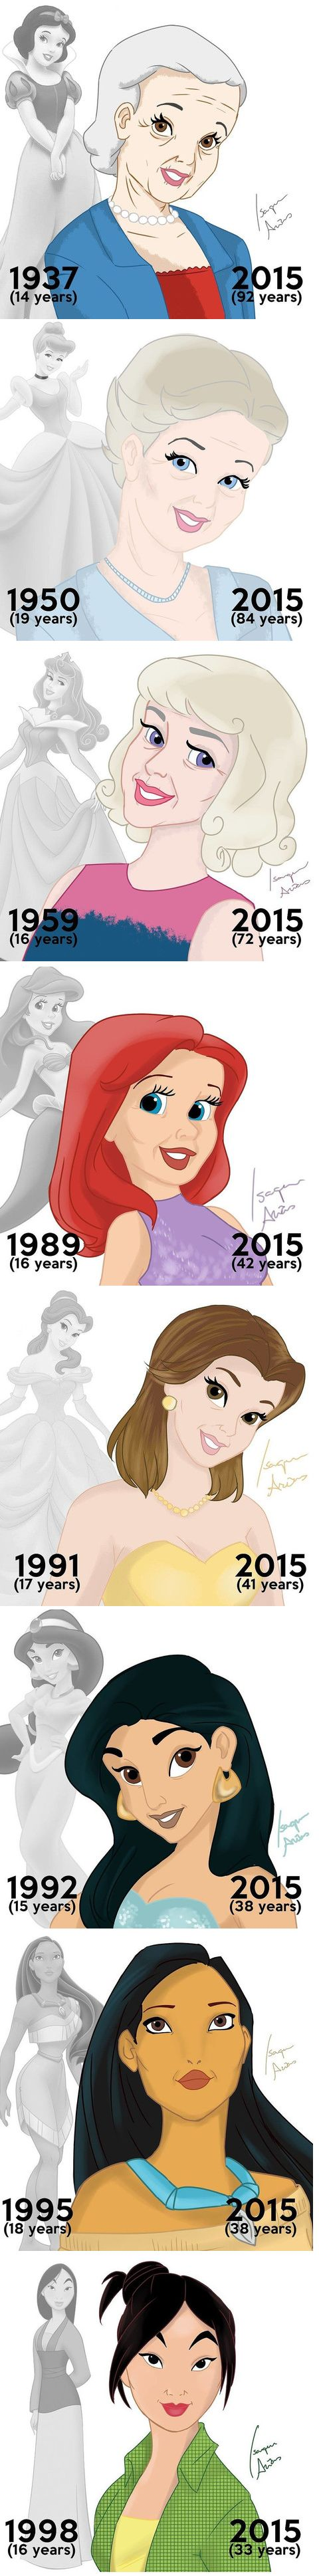 Disney Princesses - Then & Now by Brazilian artist Isaque Areas